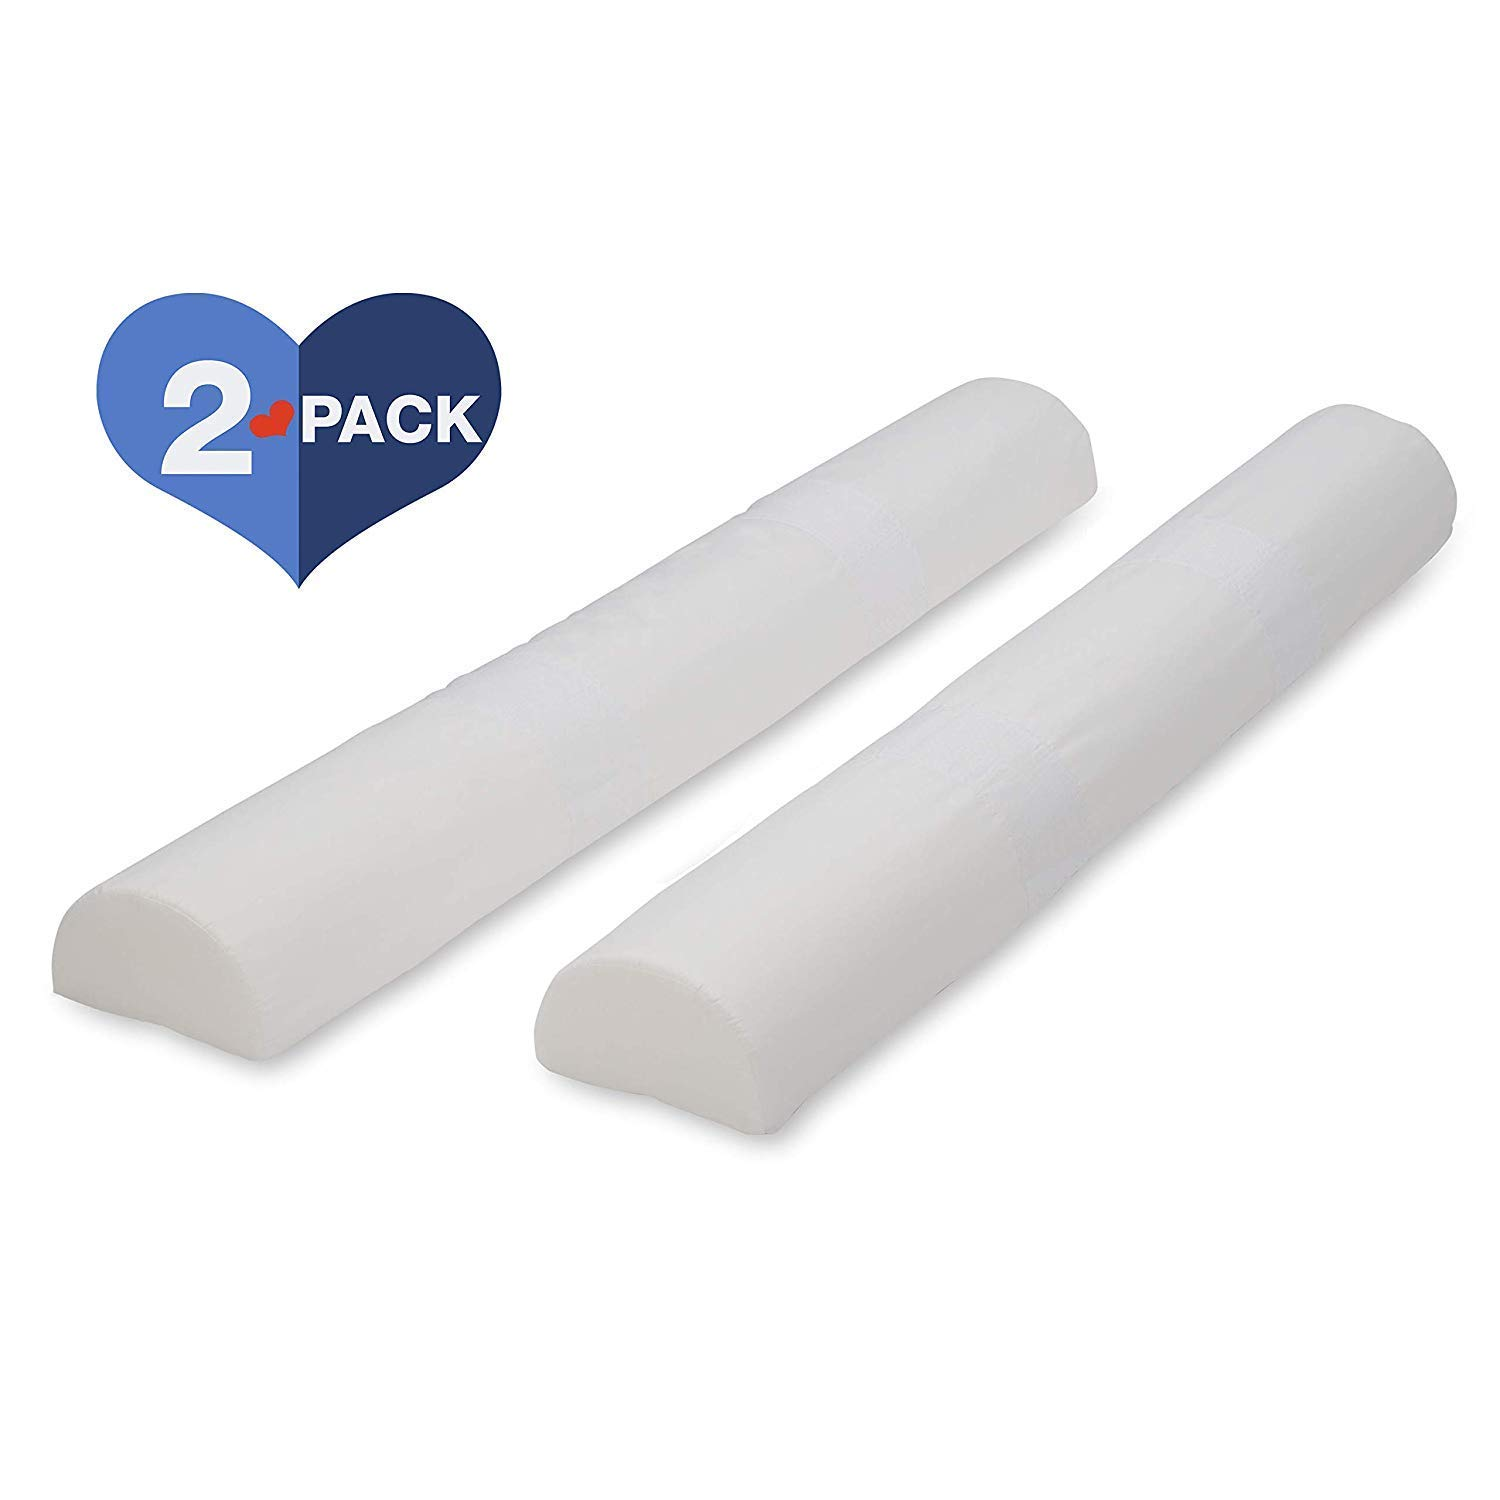 Delta Children Foam Bed Rails/Bumpers with Water-Resistant Covers and Non-Slip Bottoms for Toddlers & Kids - 2 Pack (White) by Delta Children (Image #2)